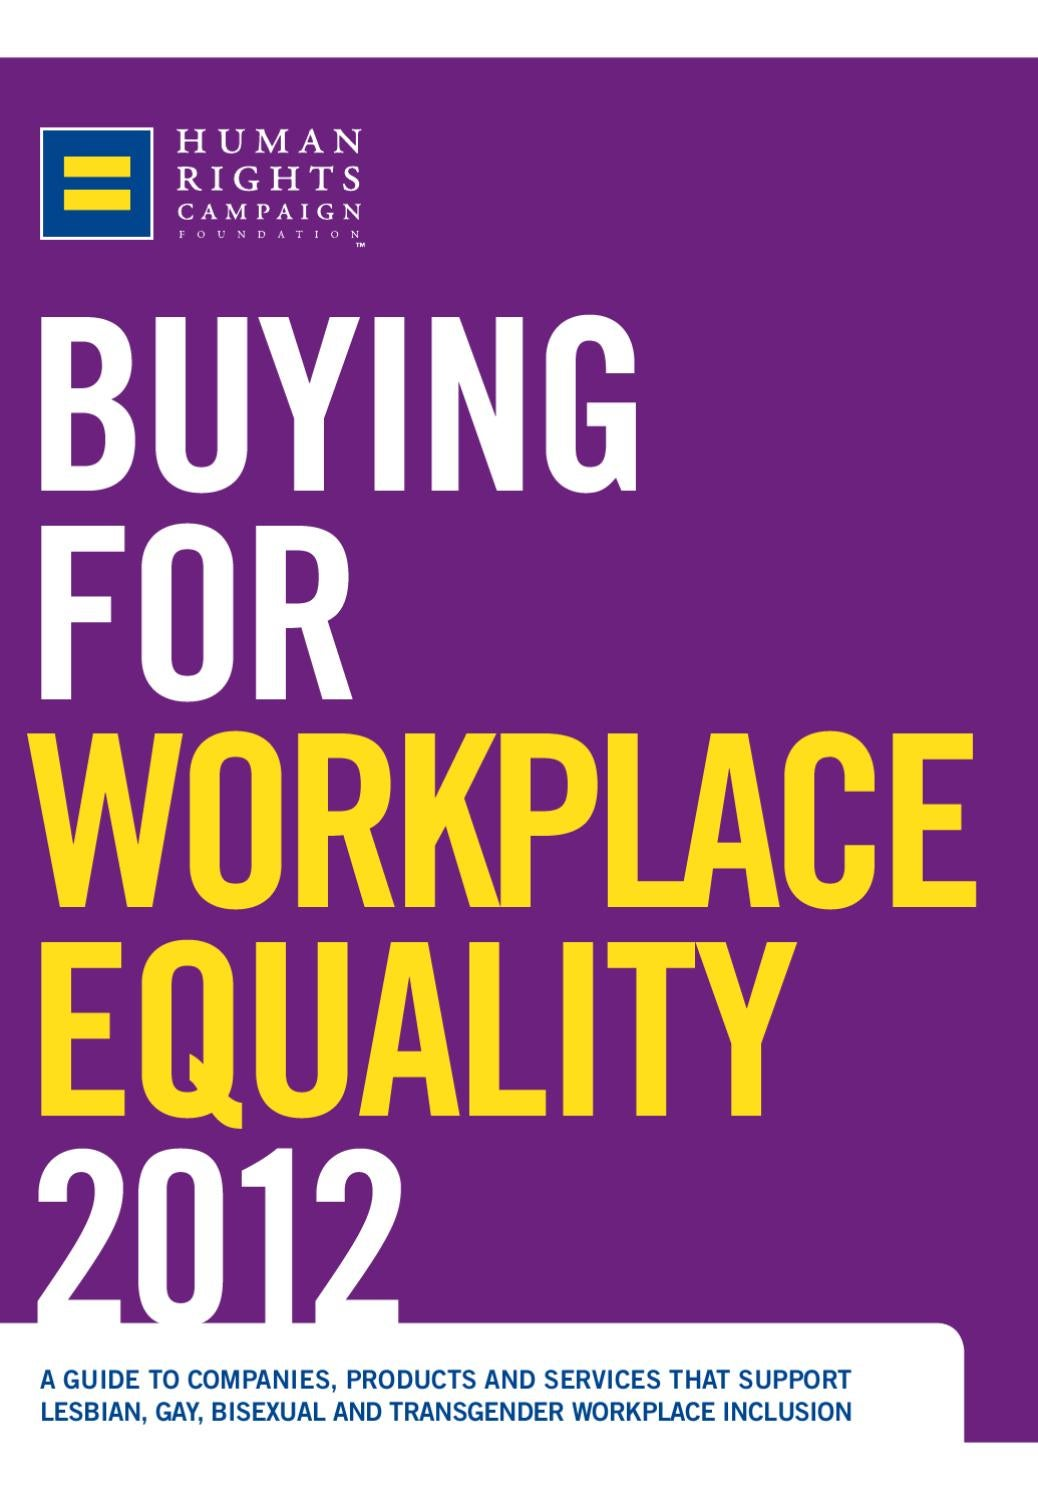 2012 Buyer's Guide by Human Rights Campaign - issuu